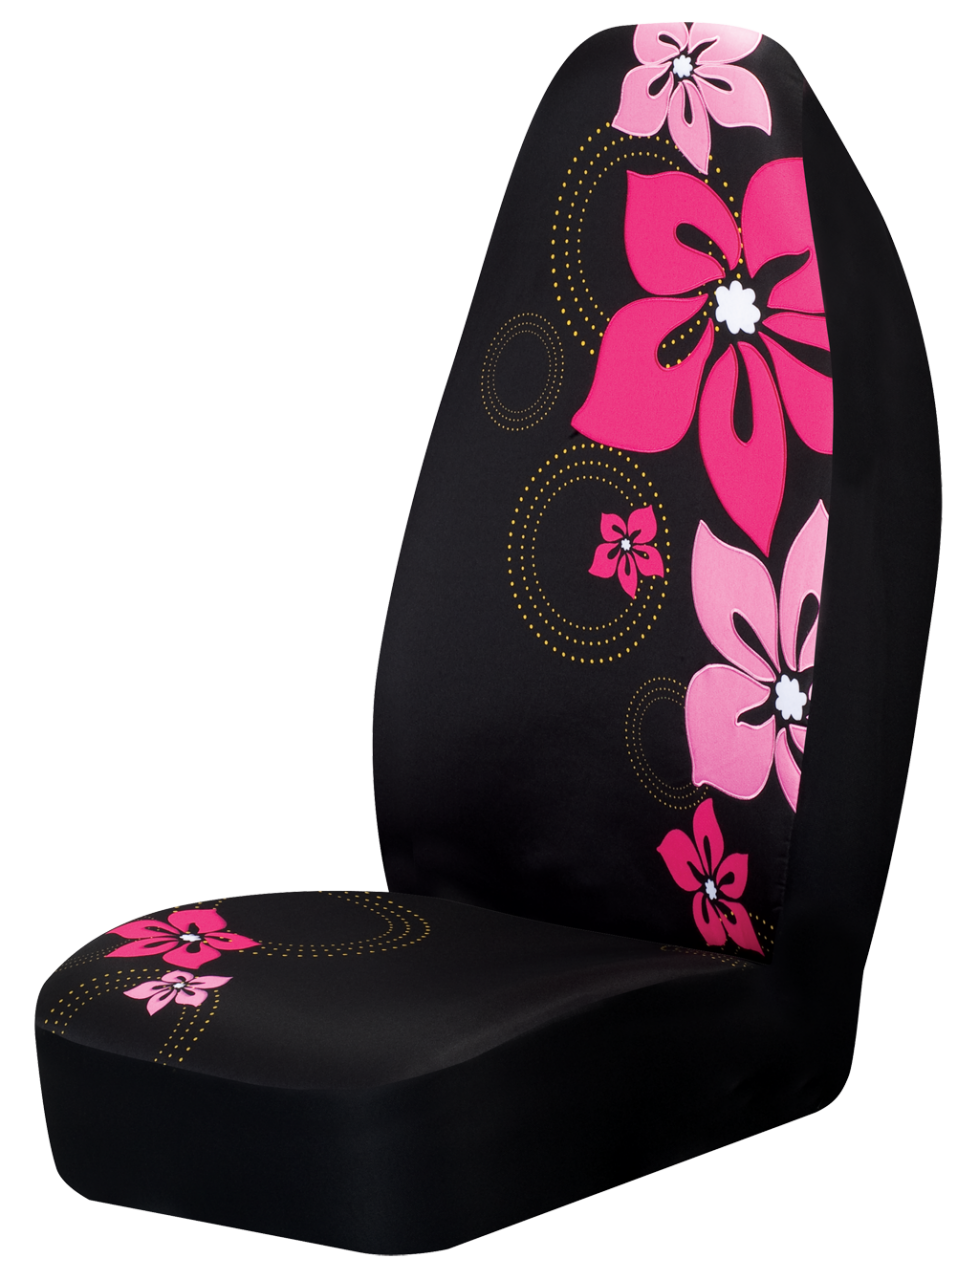 Hot Pink Flower Car Seat Cover Girly Car Accessory Girly